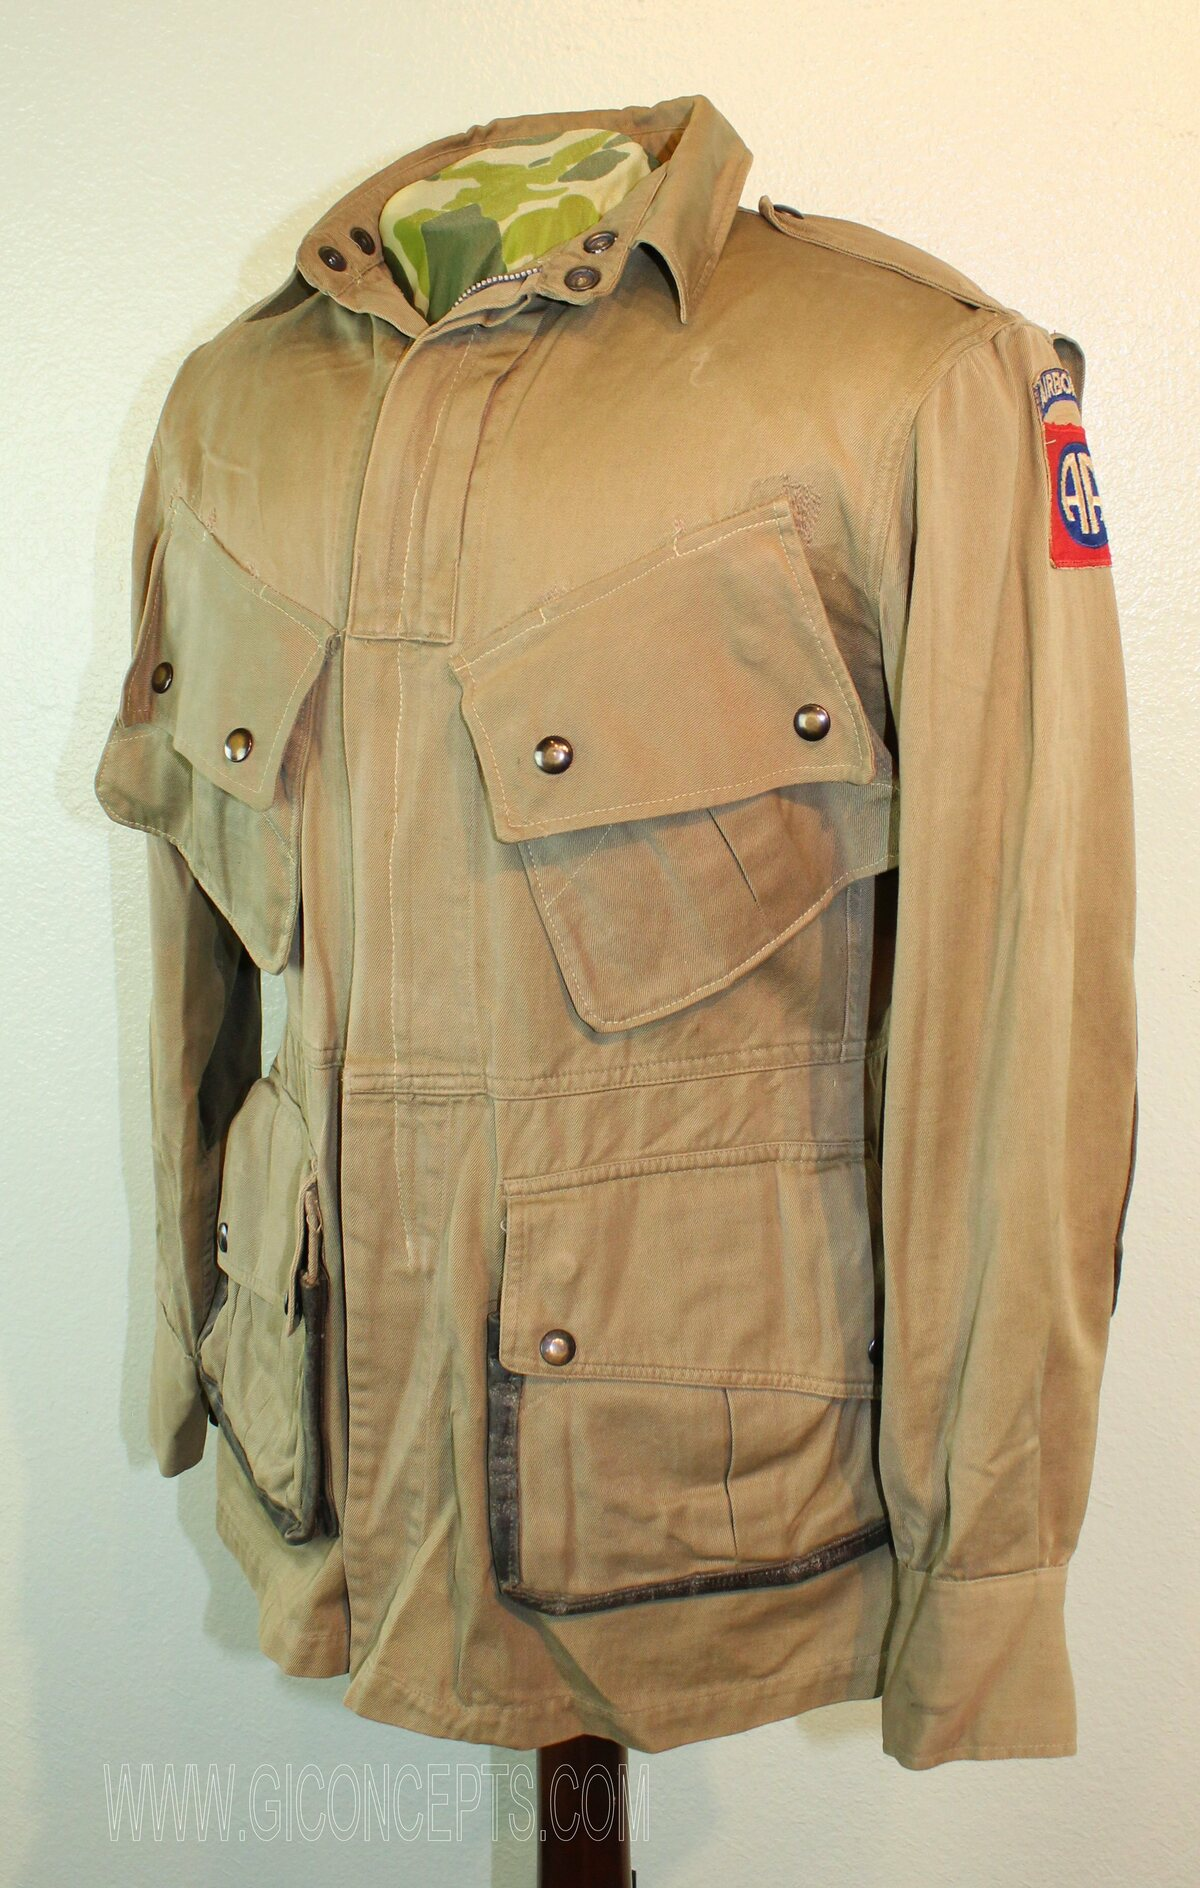 82nd Airborne Reinforced M42 Paratrooper Jacket